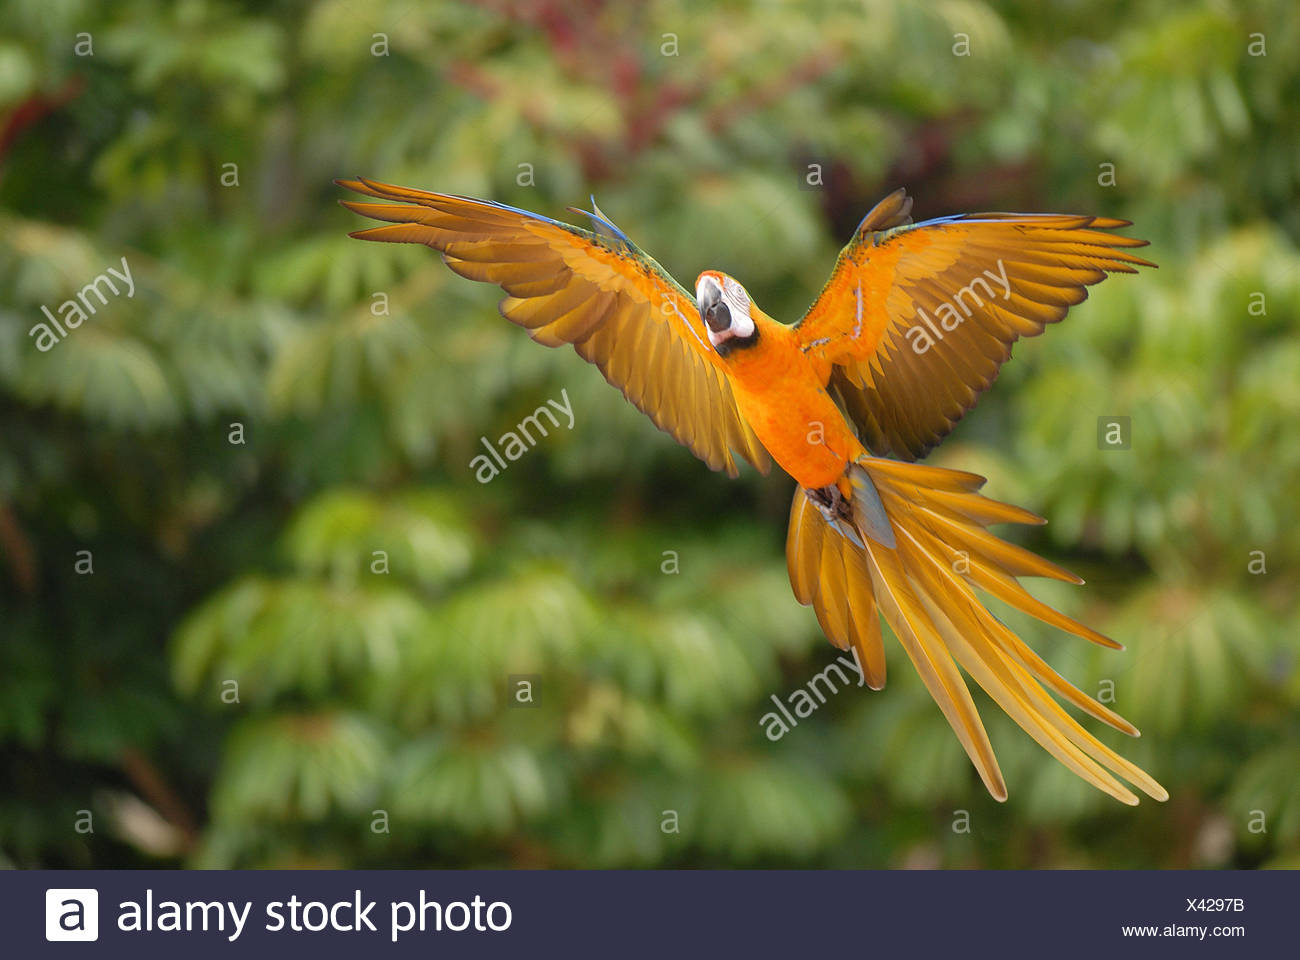 Jungles, yellow Ara, Ara ararauna, flight, Wildlife, wild animal, animal, bird, parrot, parrots, Par-red, fly, swing wing, spread, feathers, tail feathers, outstretched, - Stock Image